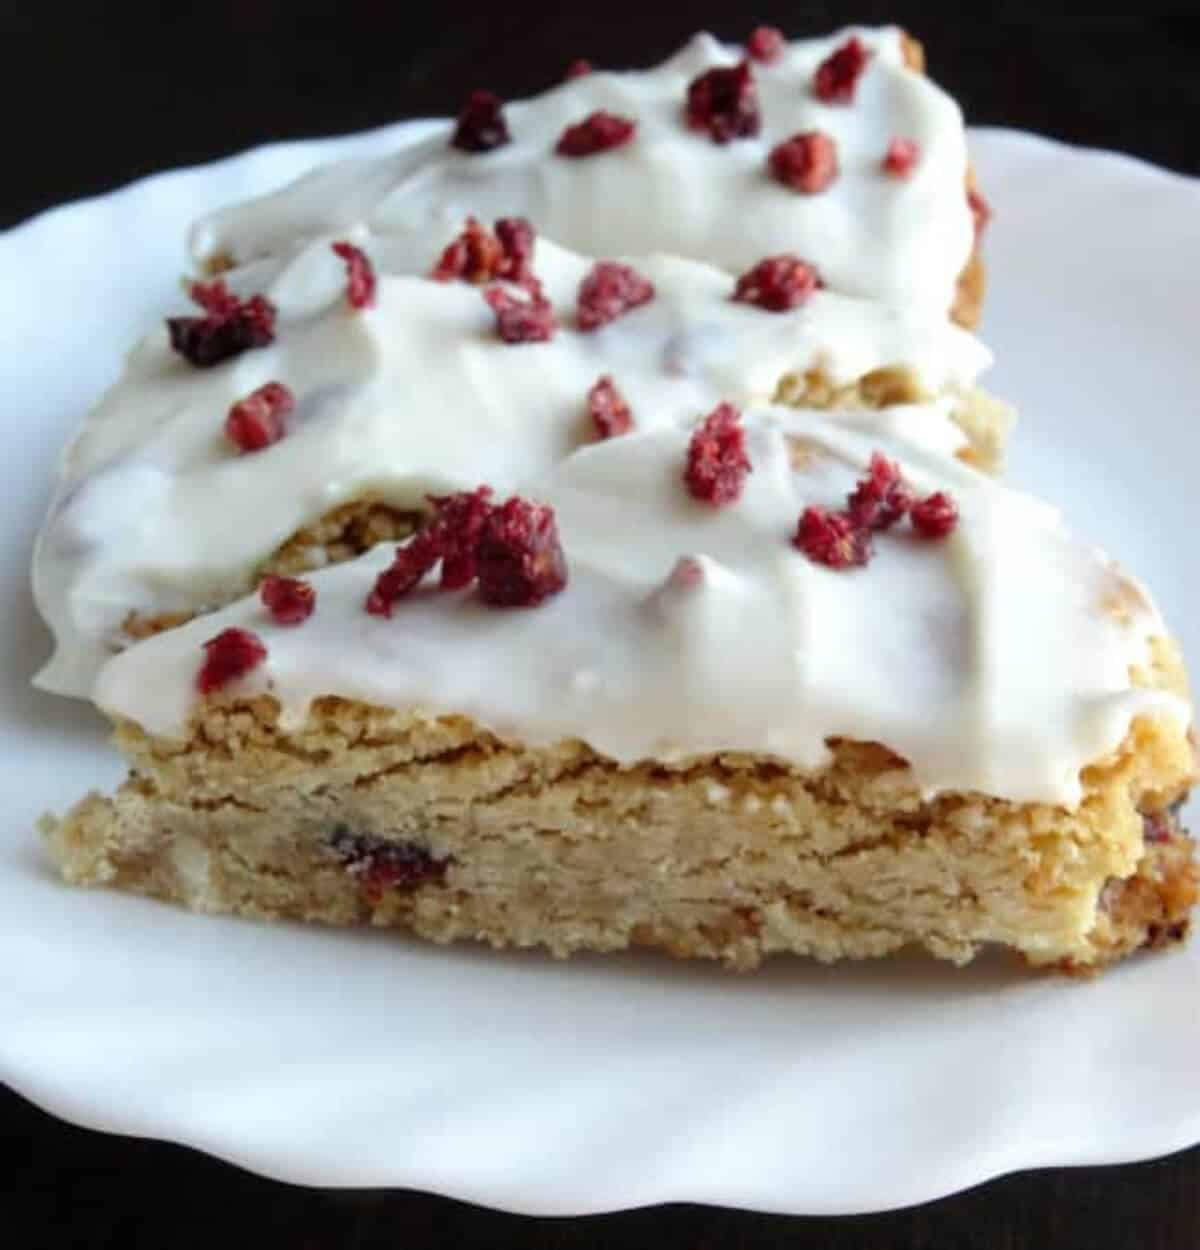 Three Copycat Starbucks Cranberry Bliss Bars lined up on a white plate.